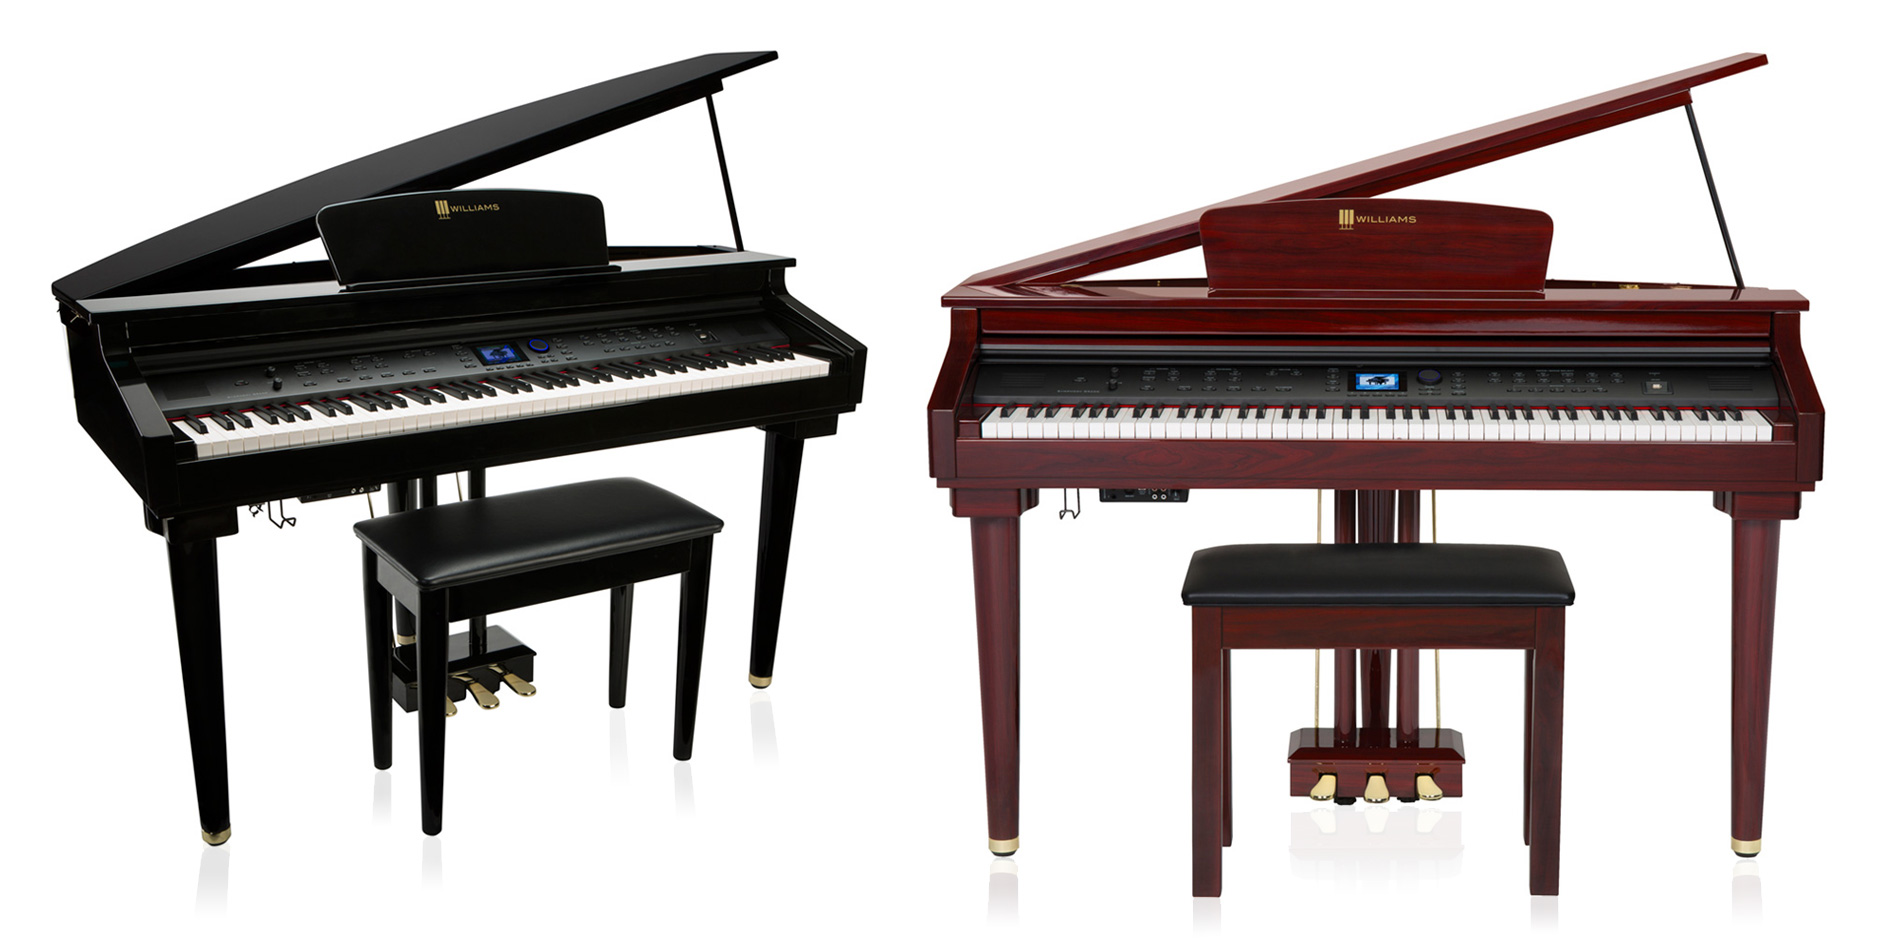 Williams Symphony Grand